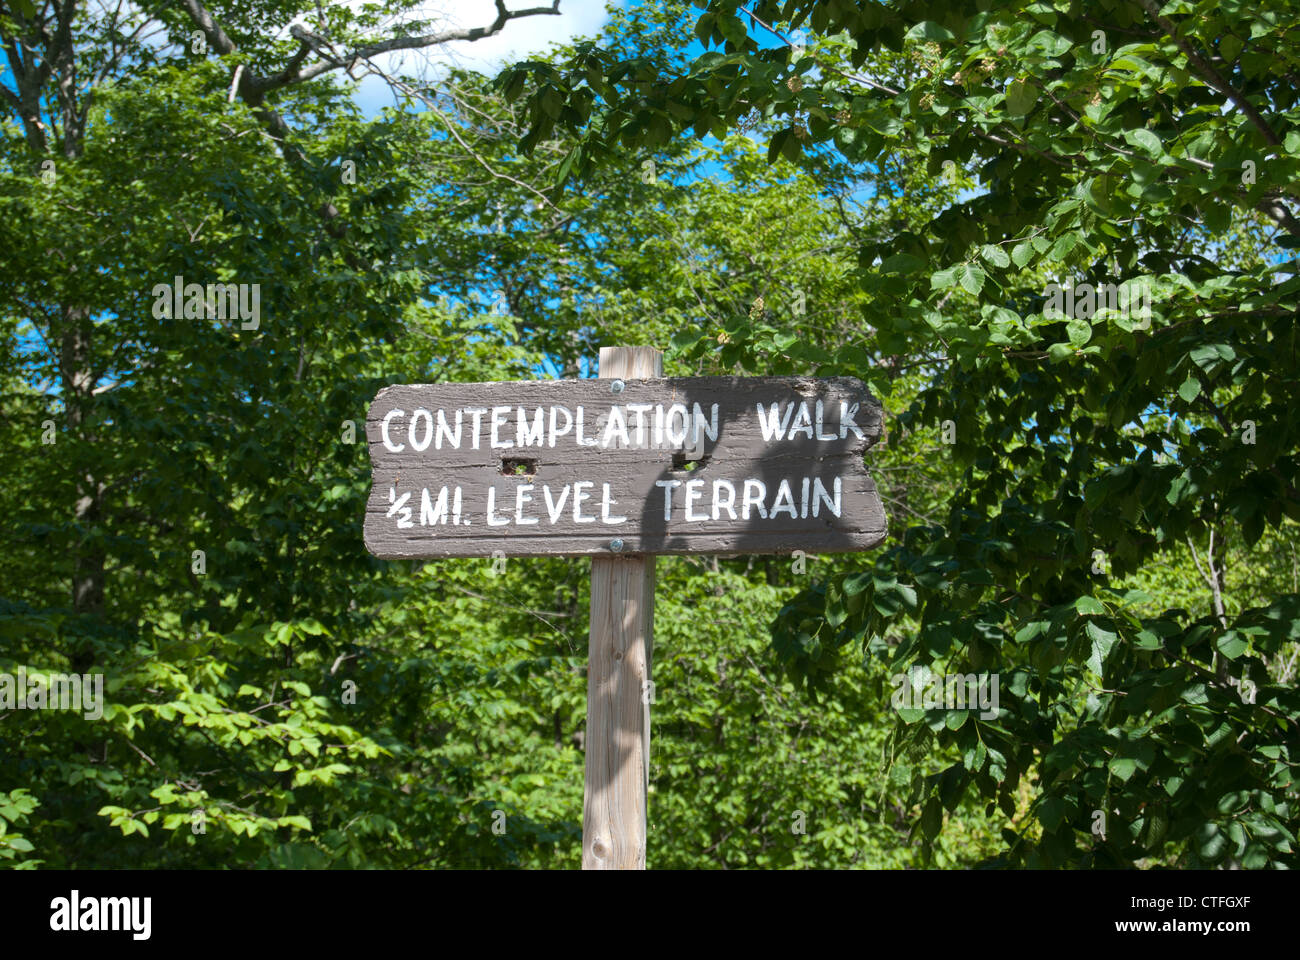 Contemplation walk sign in wooded area - Stock Image